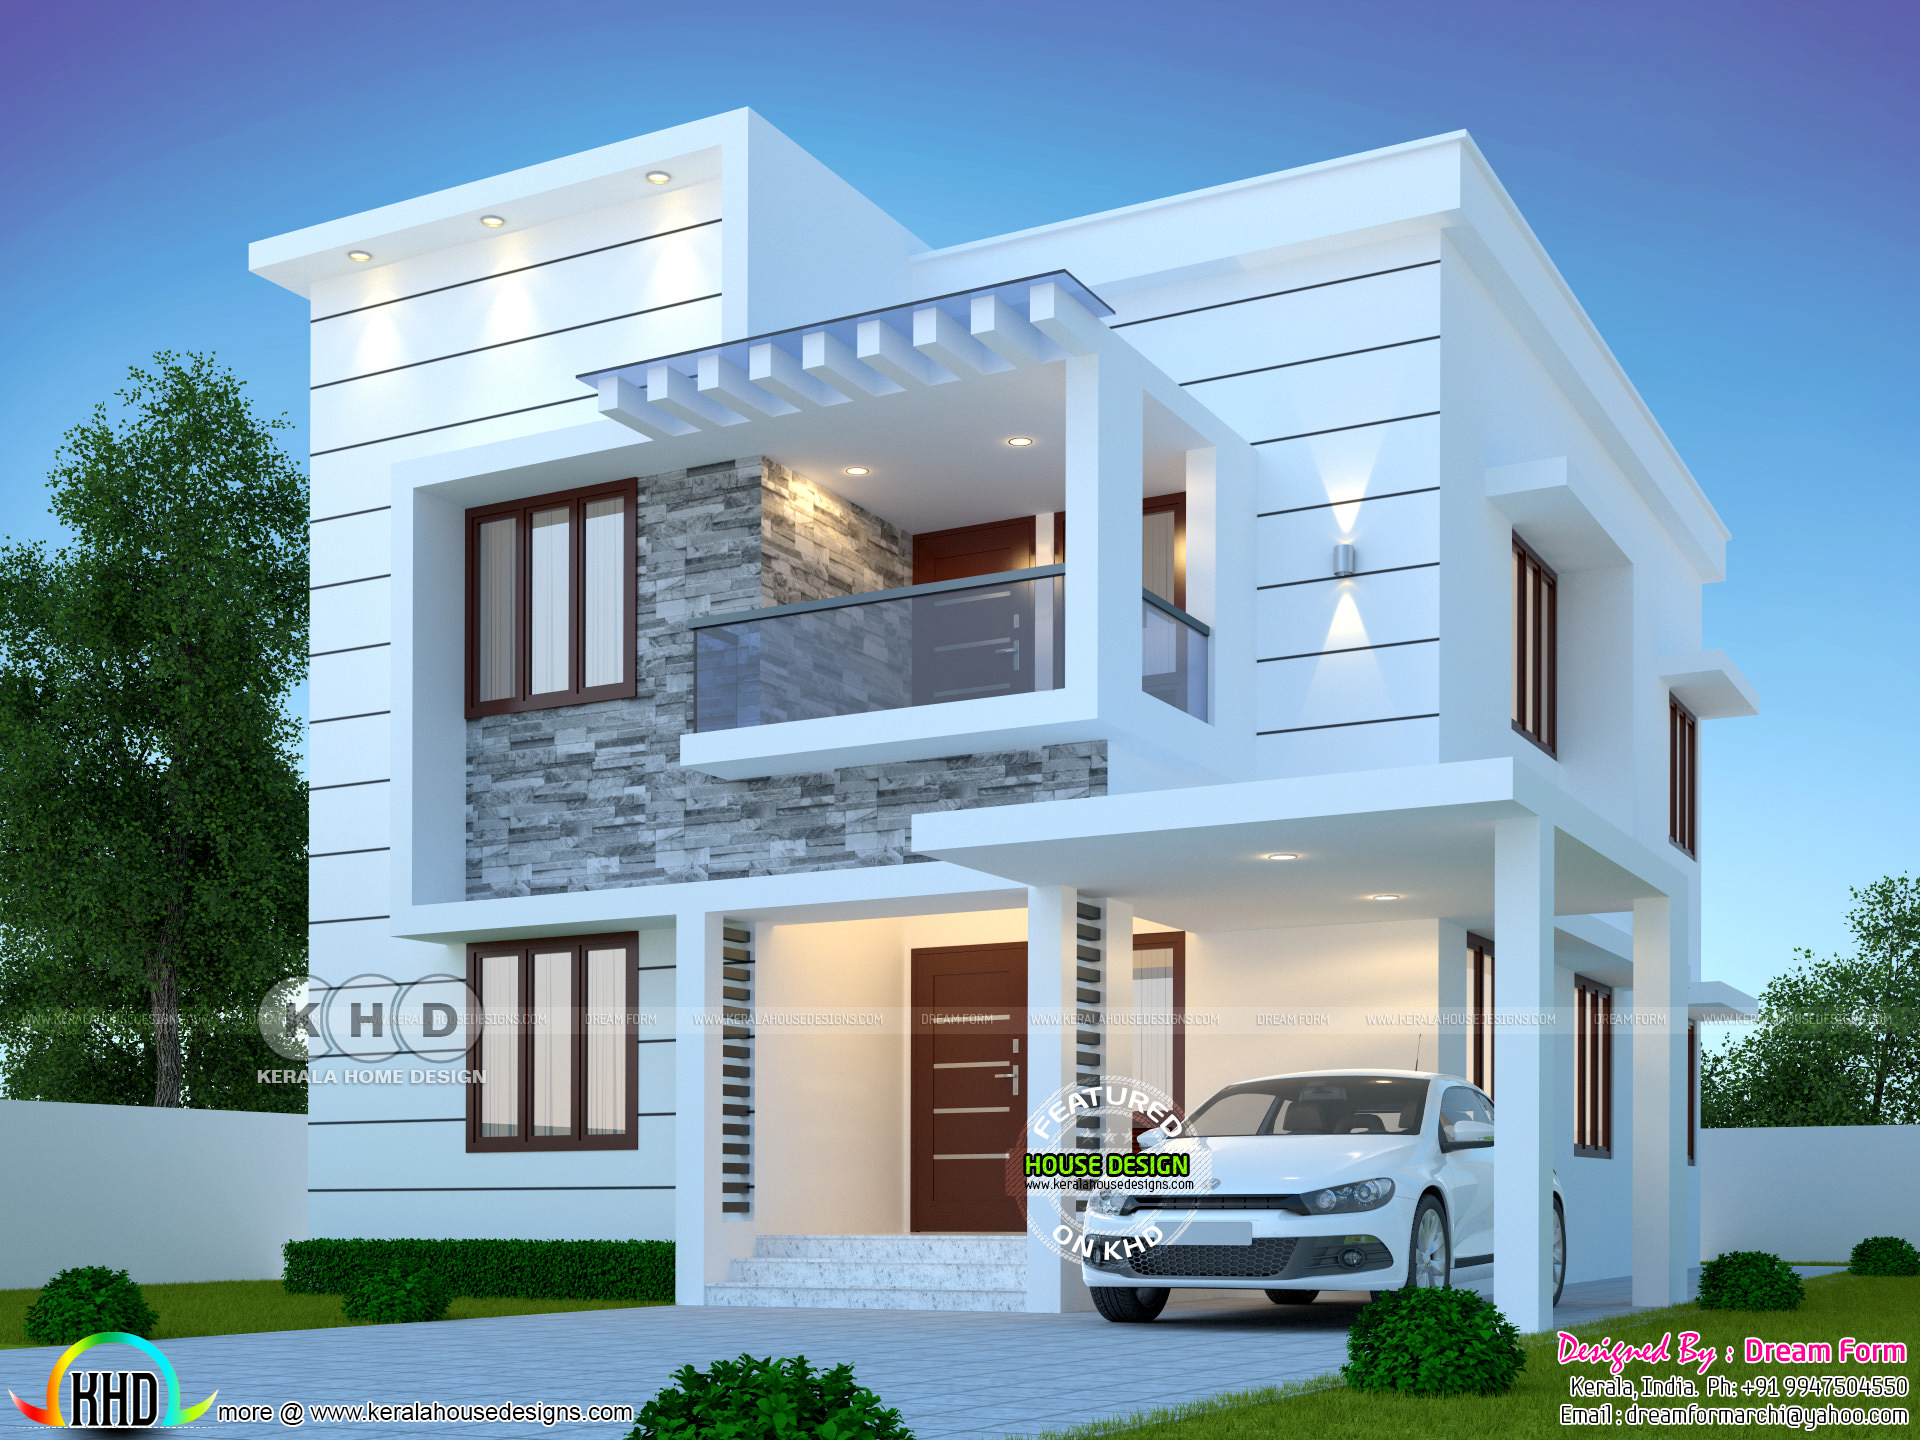 3 bedrooms 1500 sq.ft modern home design | Kerala home ...